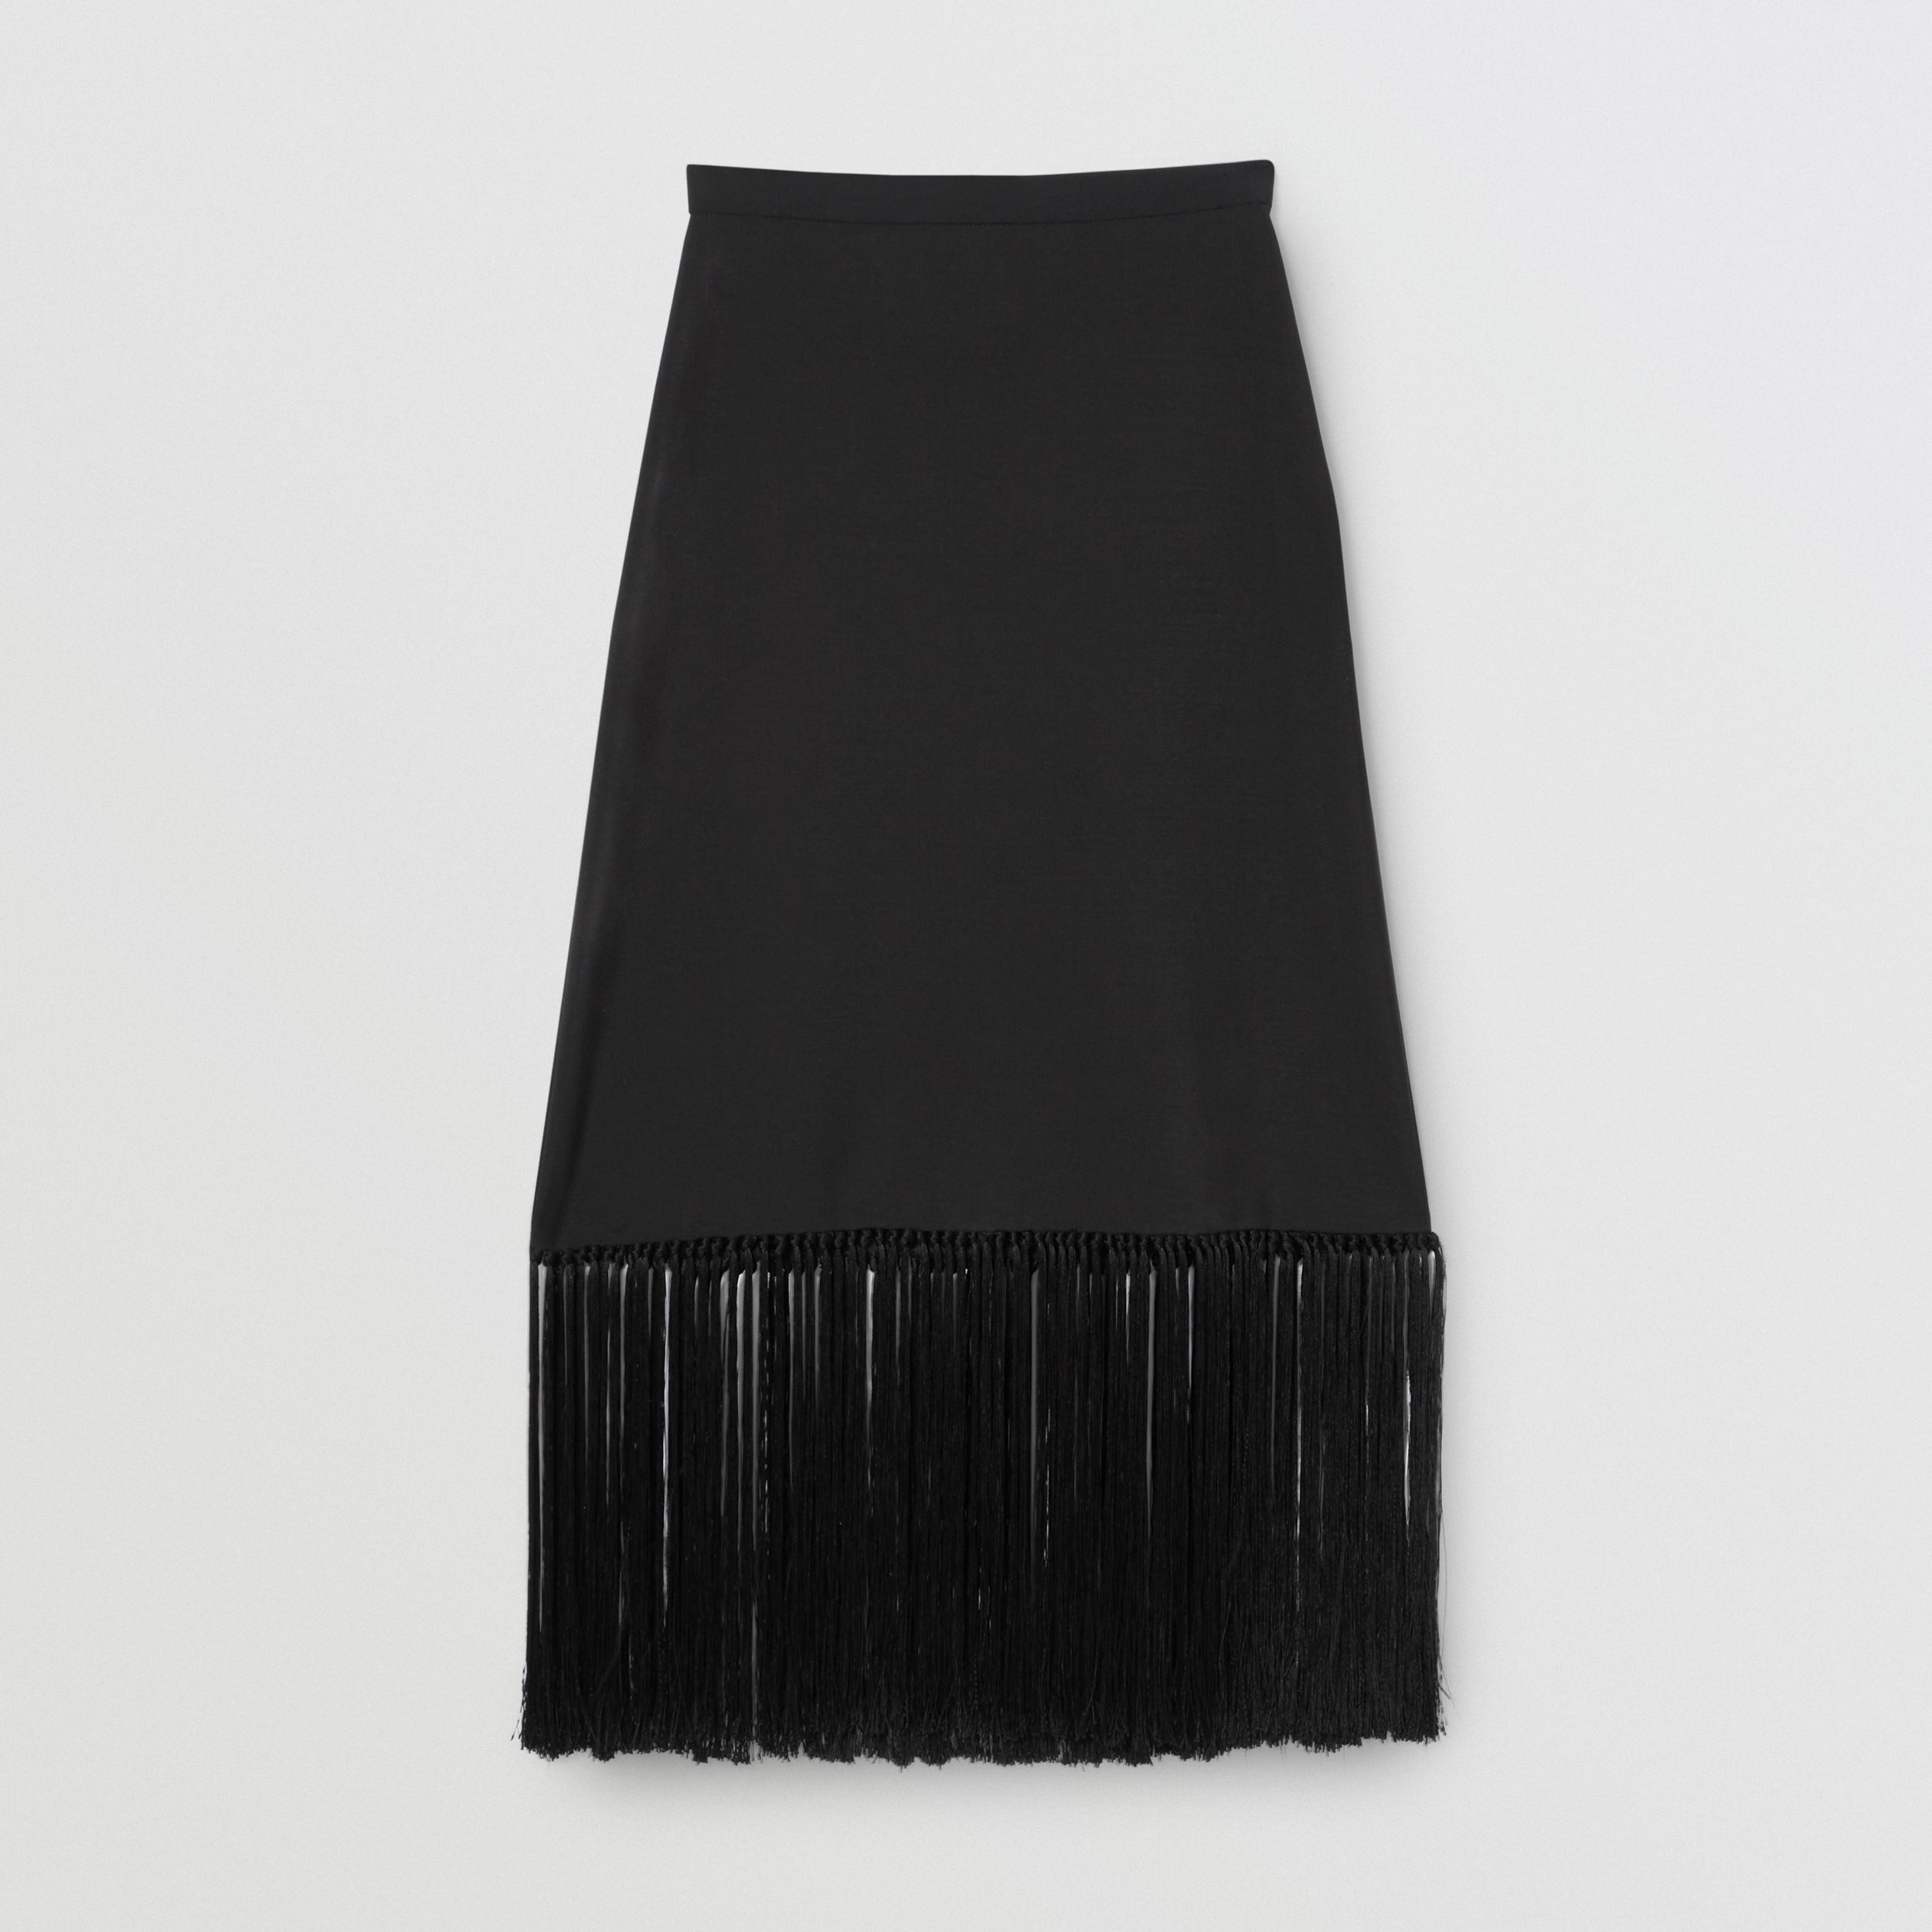 Fringed Mohair Wool A-line Skirt in Black - Women | Burberry - 4